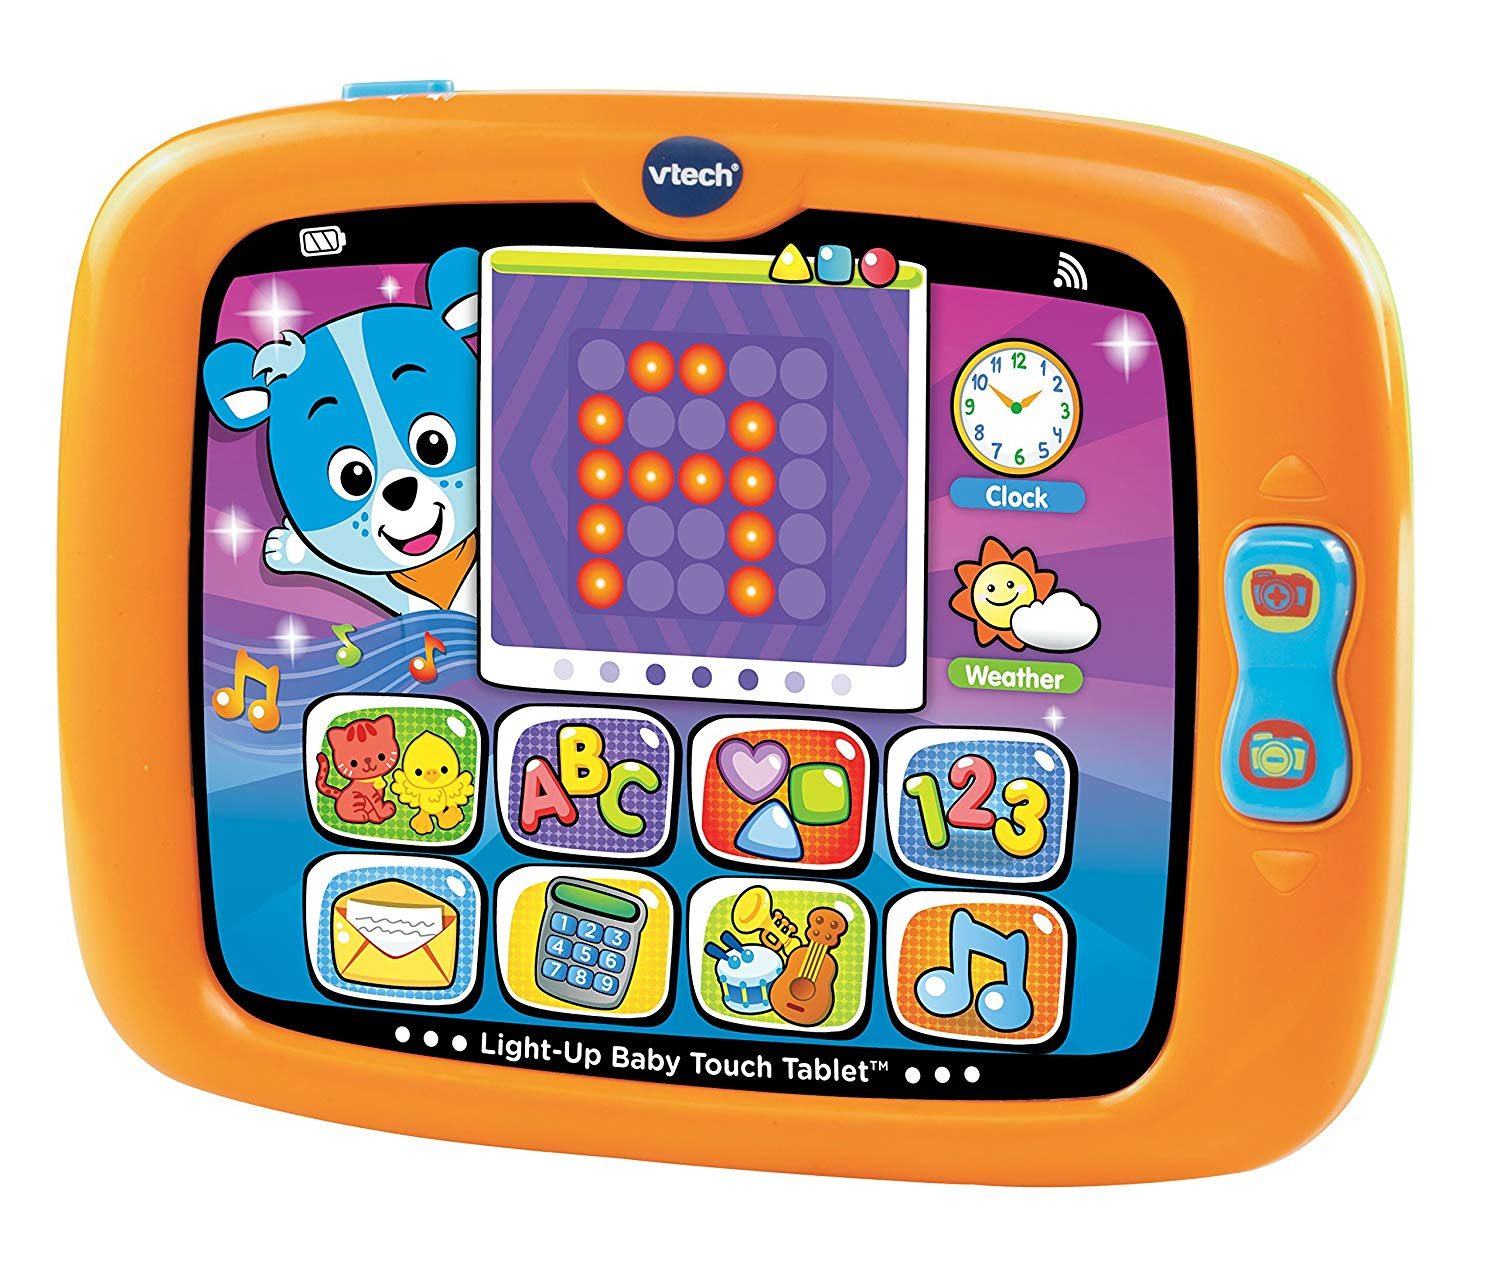 baba tablet